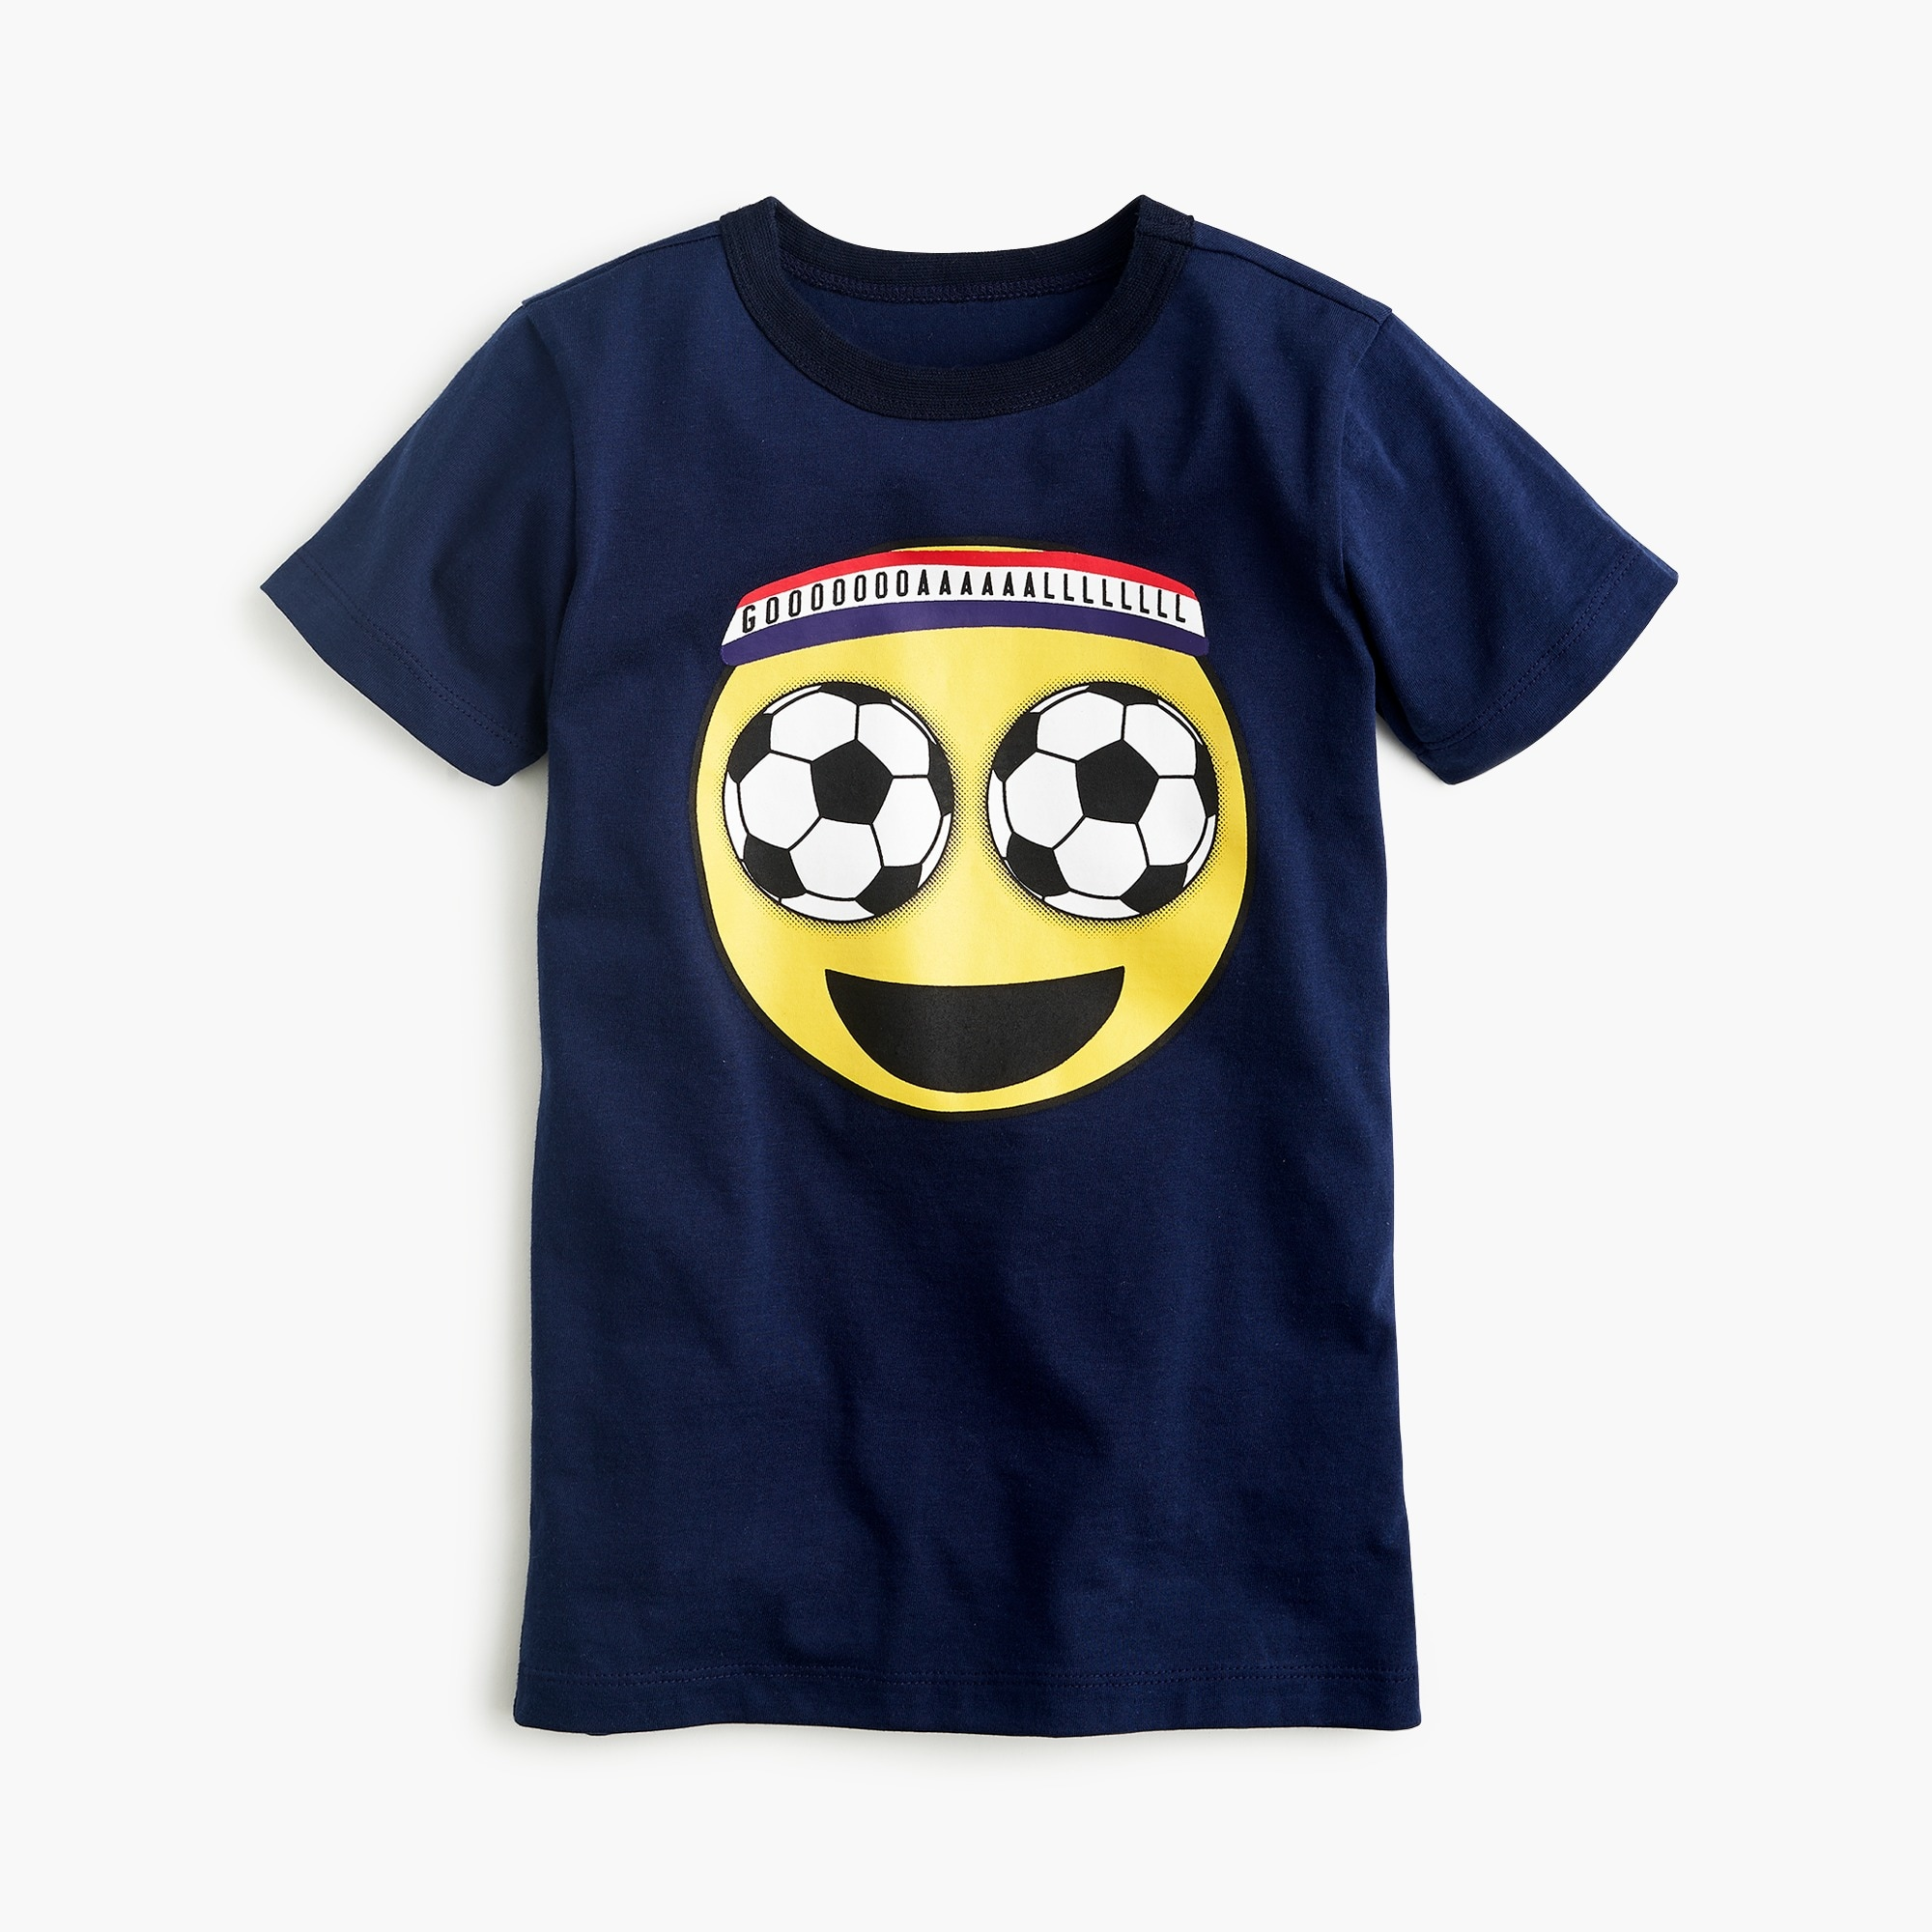 Boys' soccer-eyes emoji T-shirt boy graphics shop c